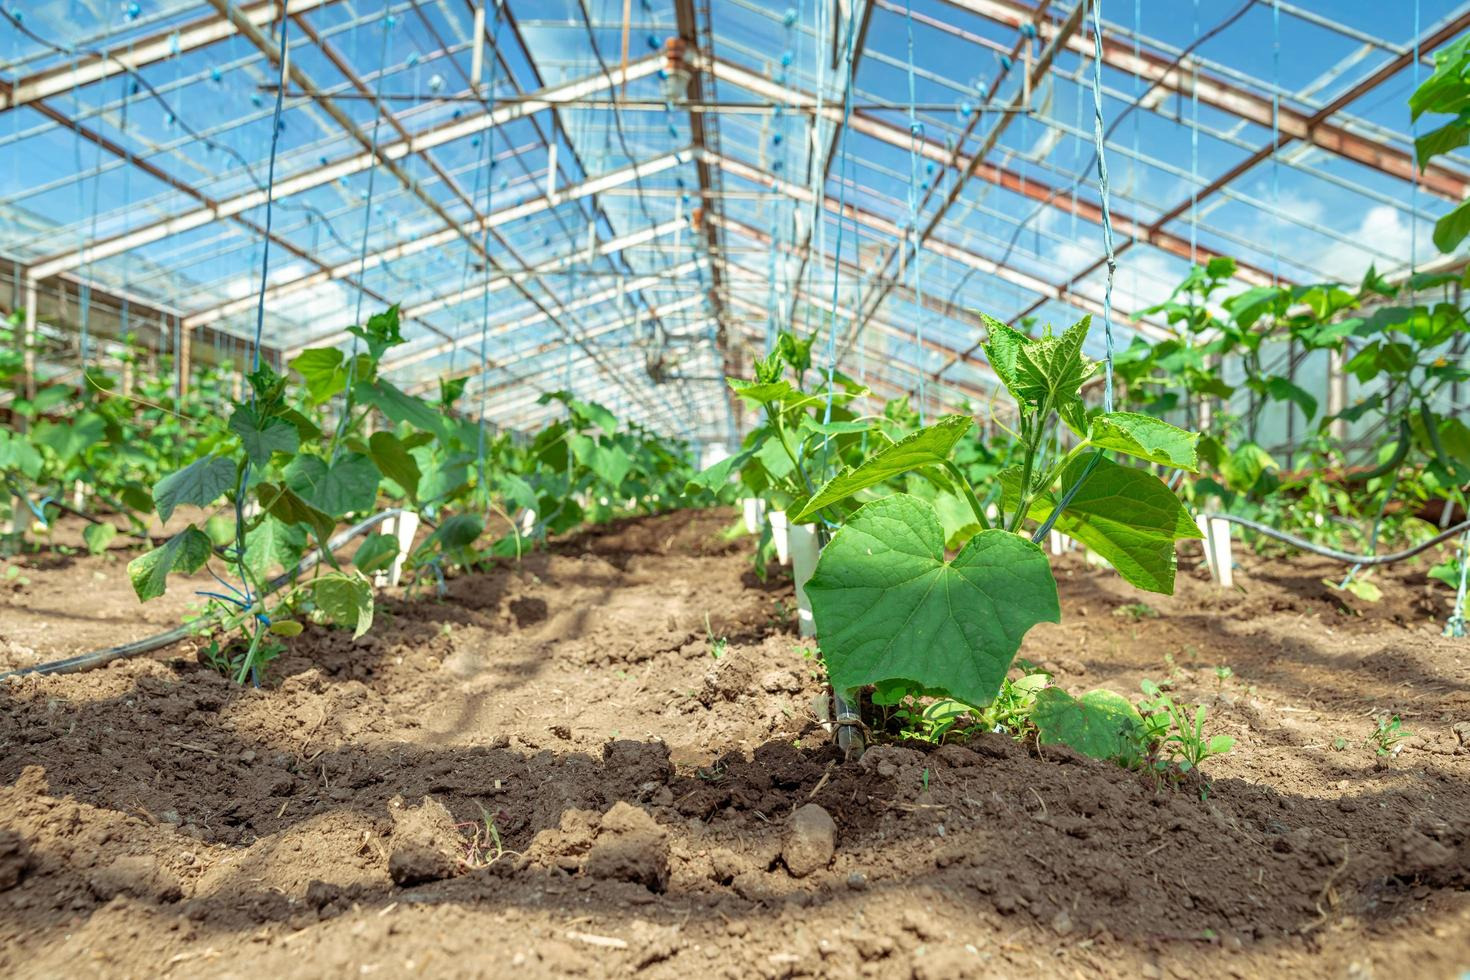 Cucumbers growing in a greenhouse  photo